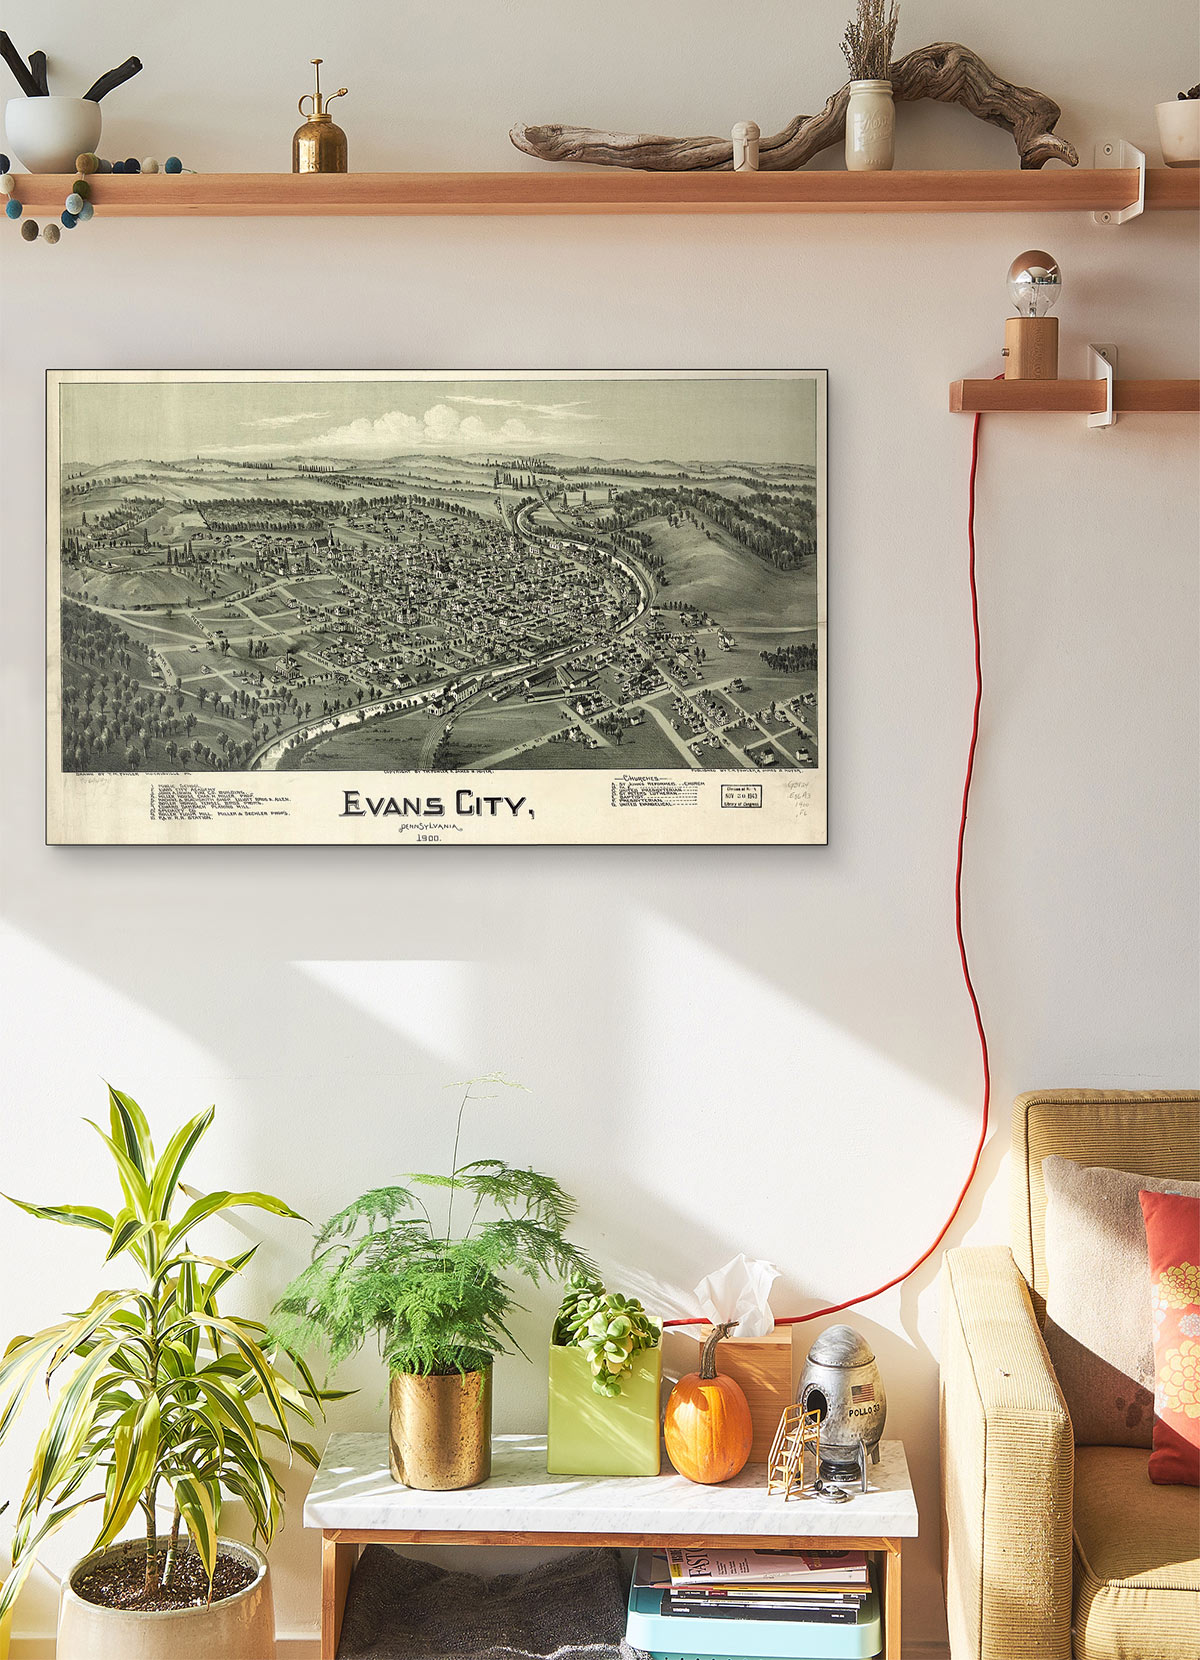 Evans City Pennsylvania 1900 LARGE Vintage Map